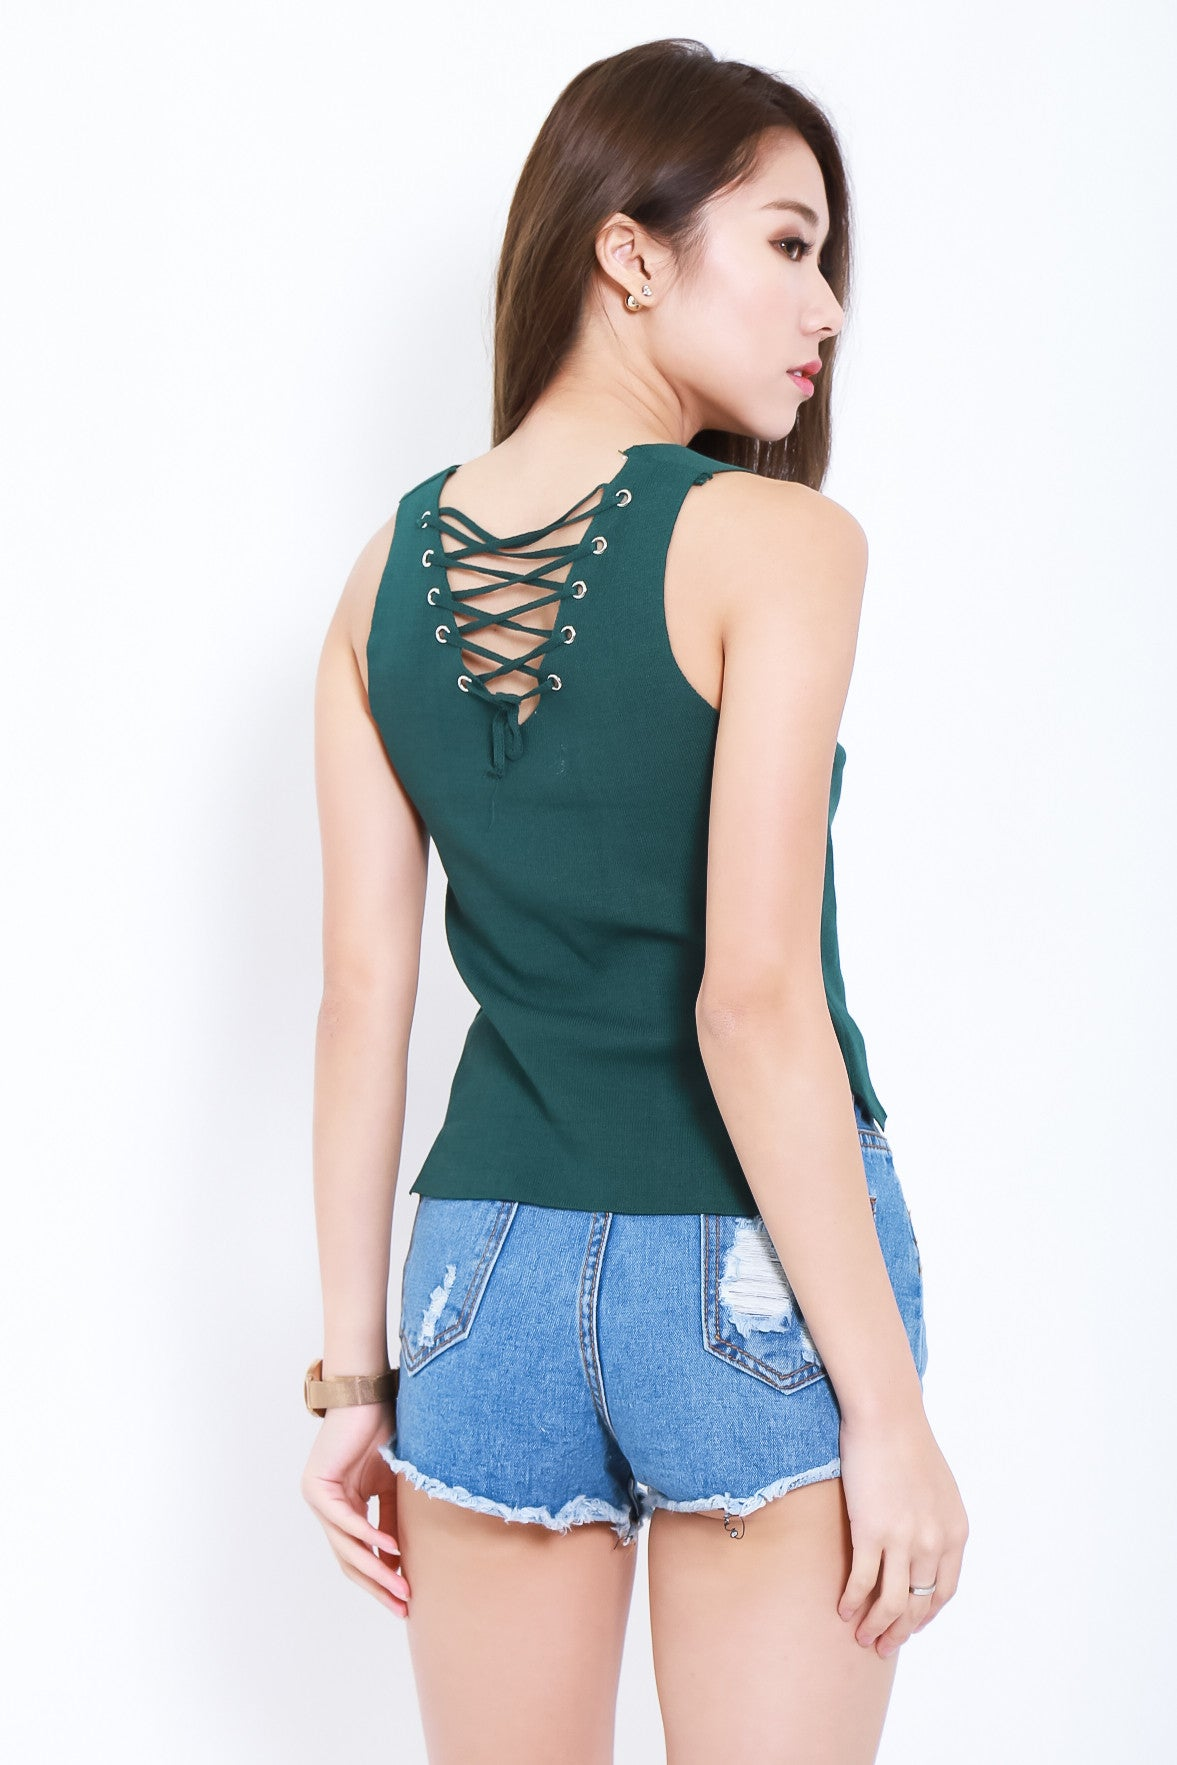 AREZ SHOELACE KNIT TOP IN FOREST - TOPAZETTE